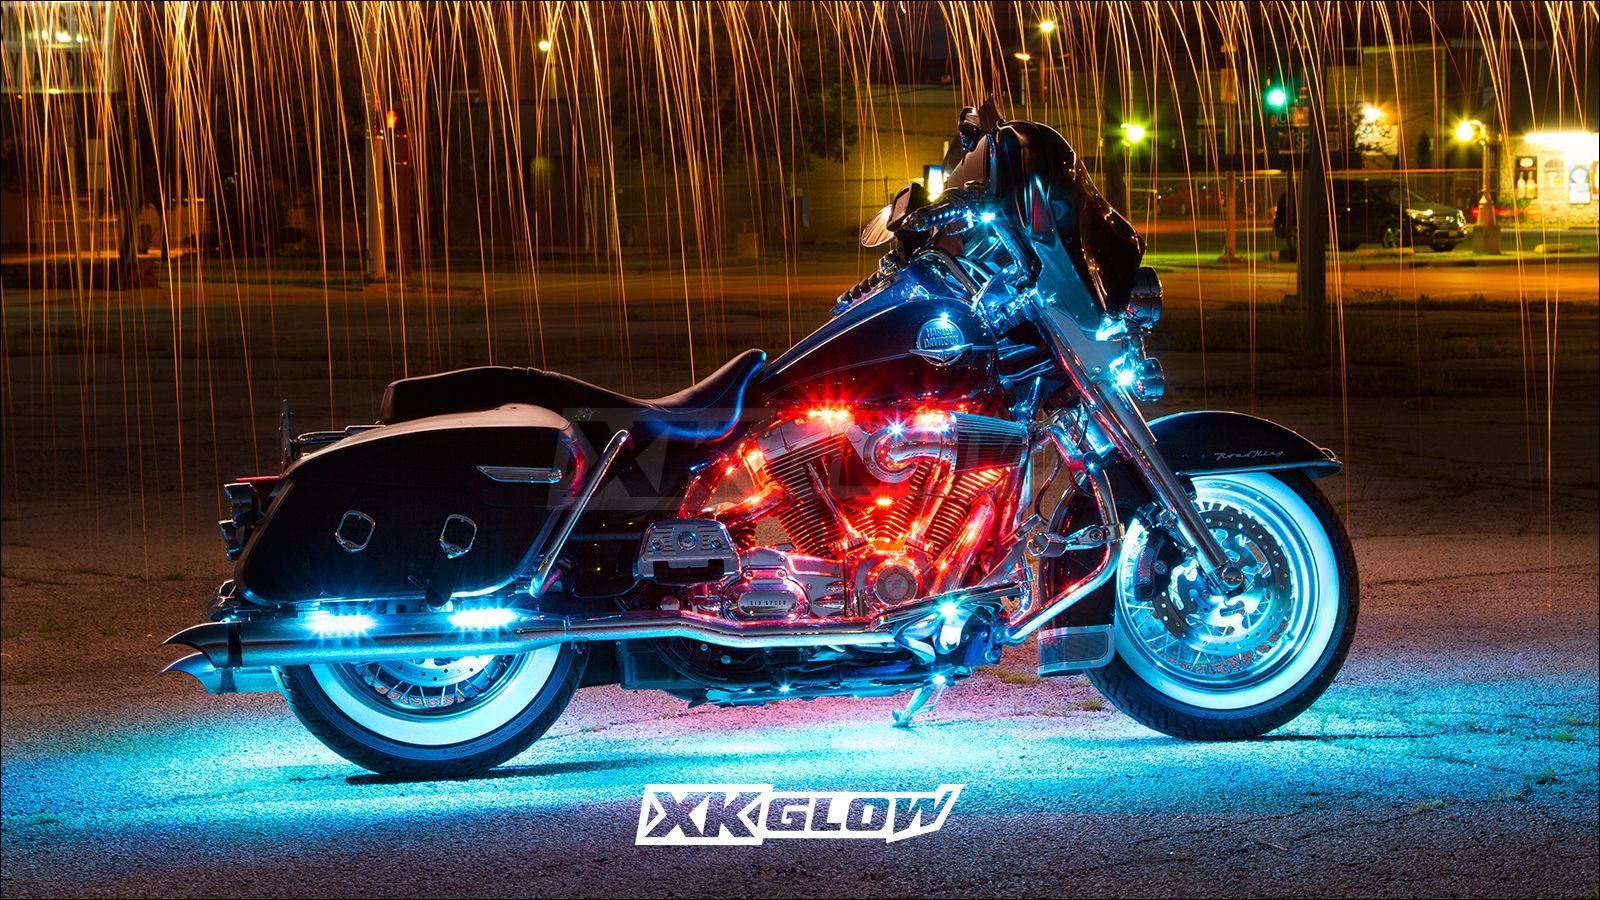 Pin By Xkglow On App Controlled Led Motorcycle Led Lighting Led Motorcycle Headlight Boat Lights